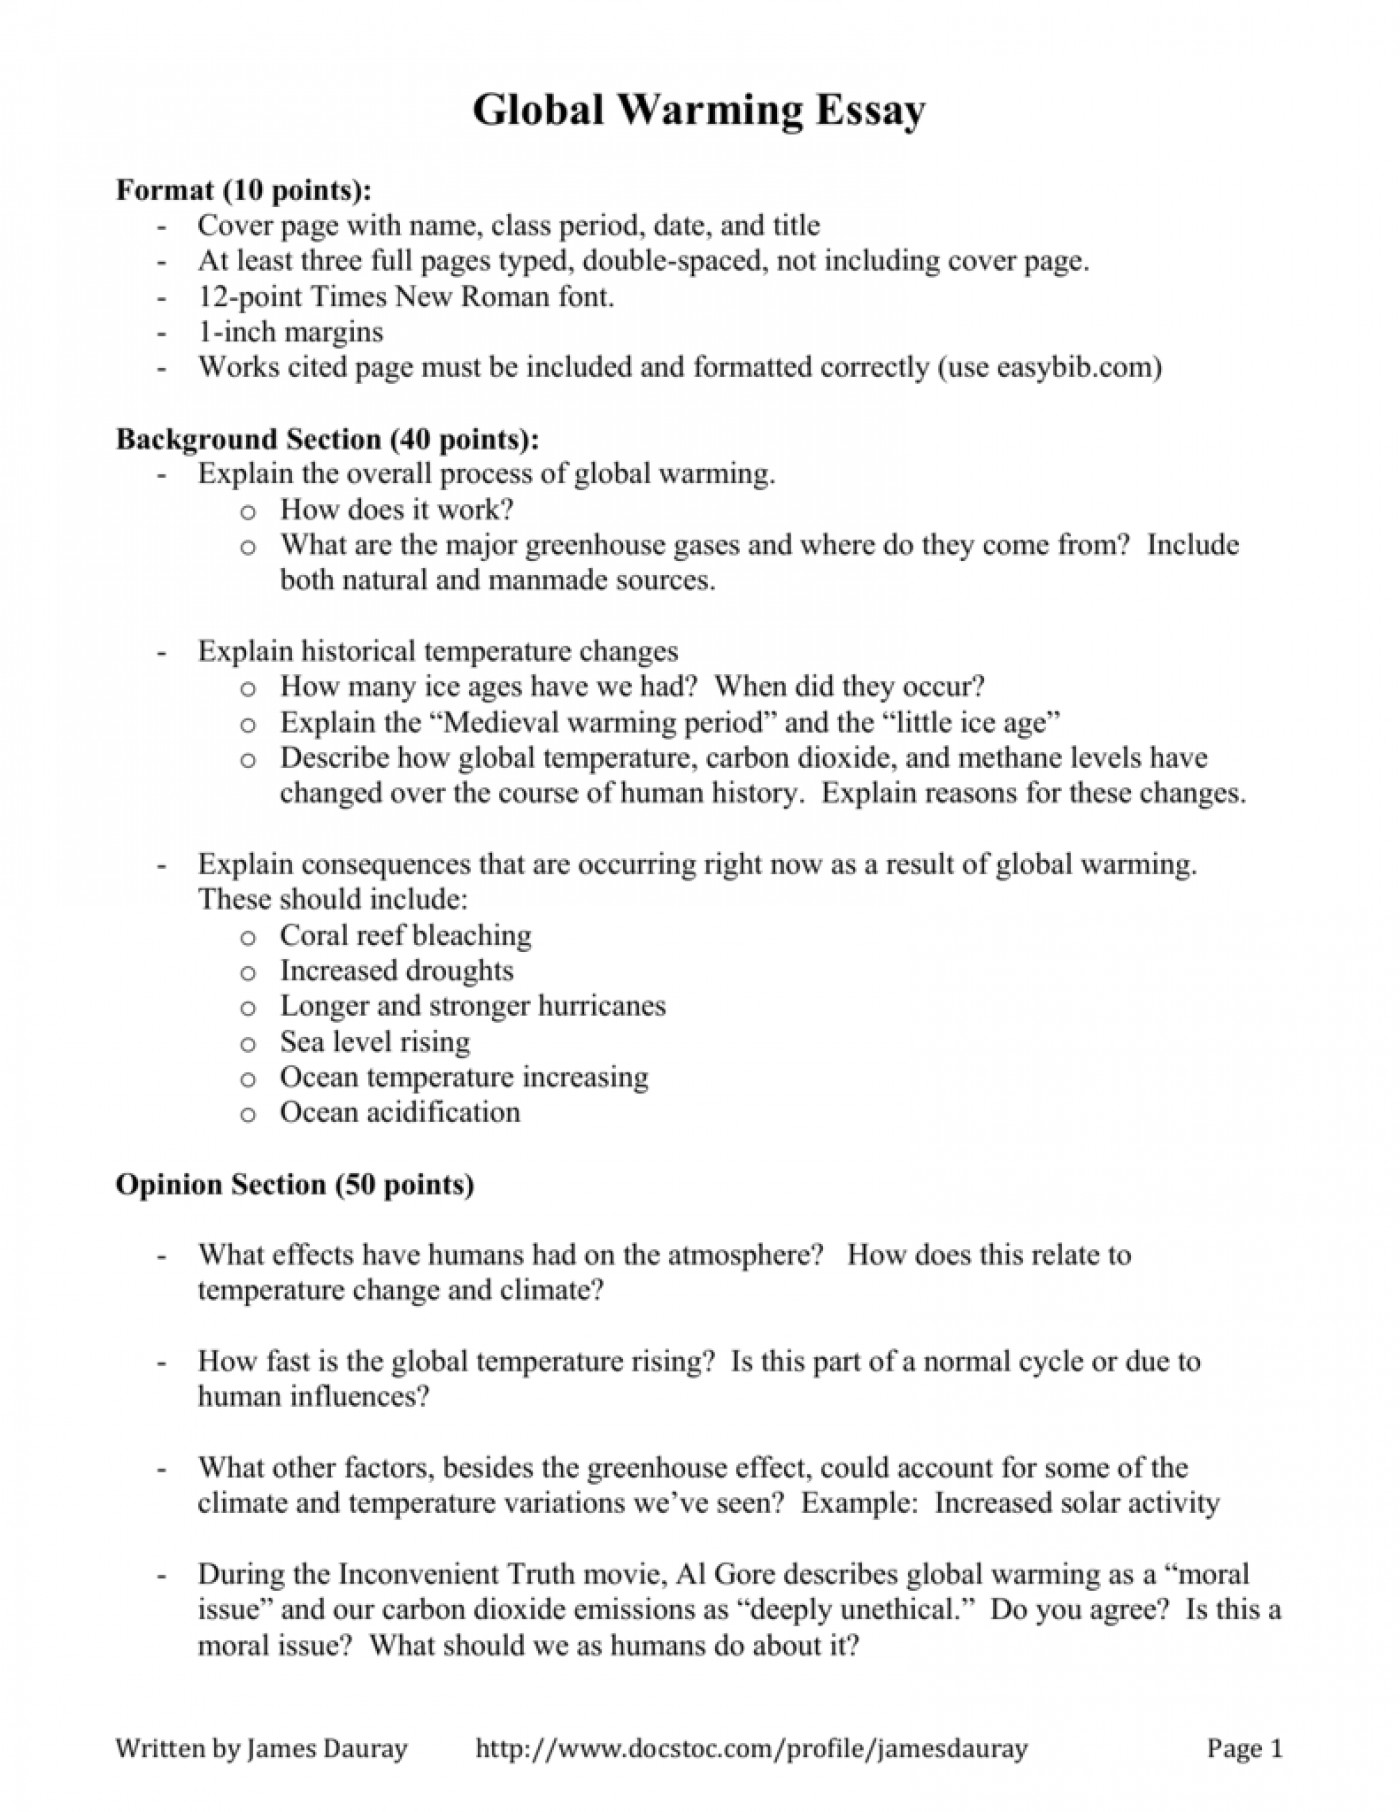 001 Global Warming Essay Example 007014108 1 Unusual Persuasive Thesis Free Research Paper Topics 1400